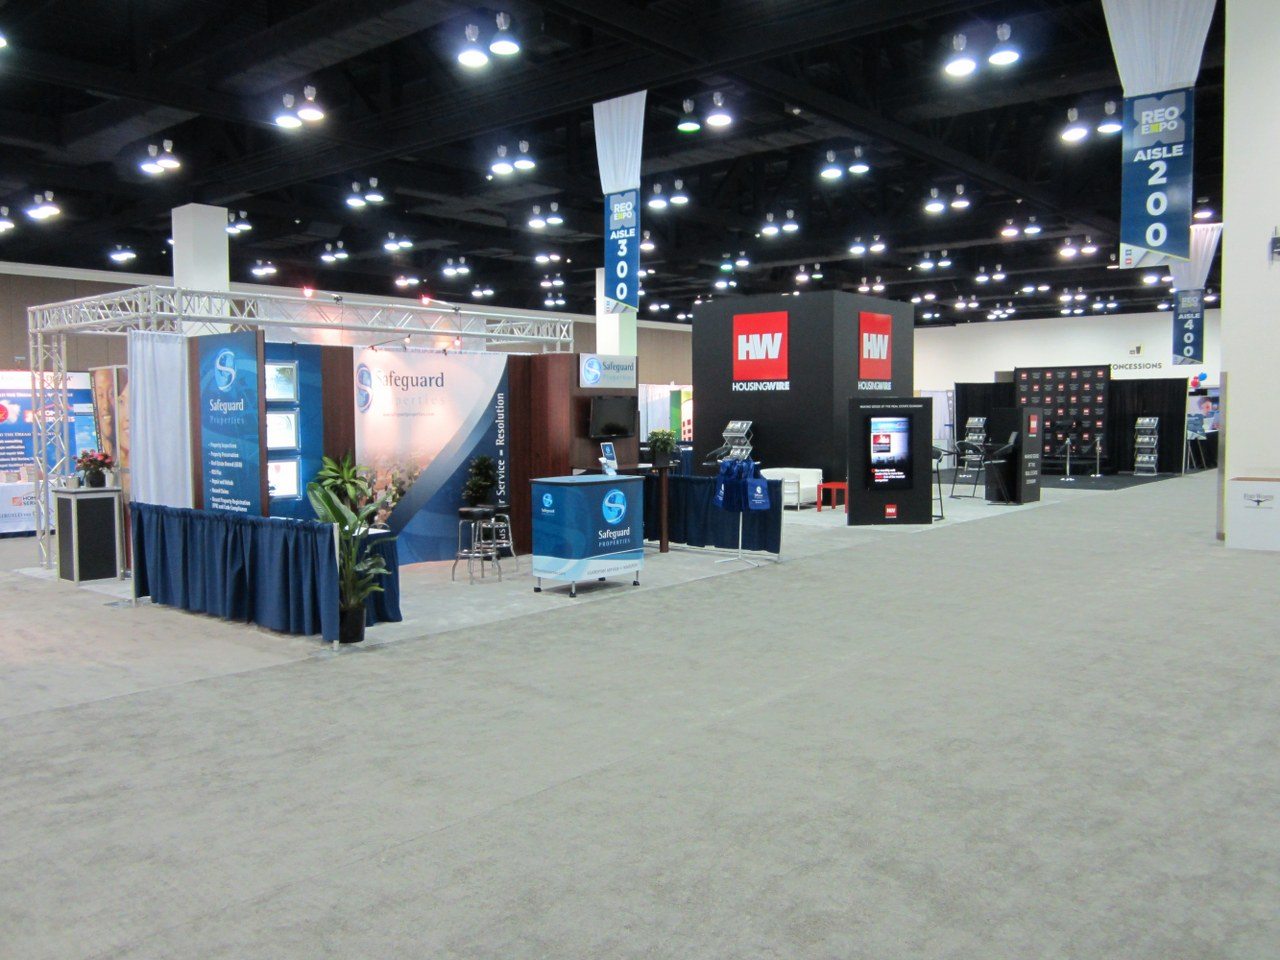 Design Stunning Exhibit Signage for Your Next Trade Show